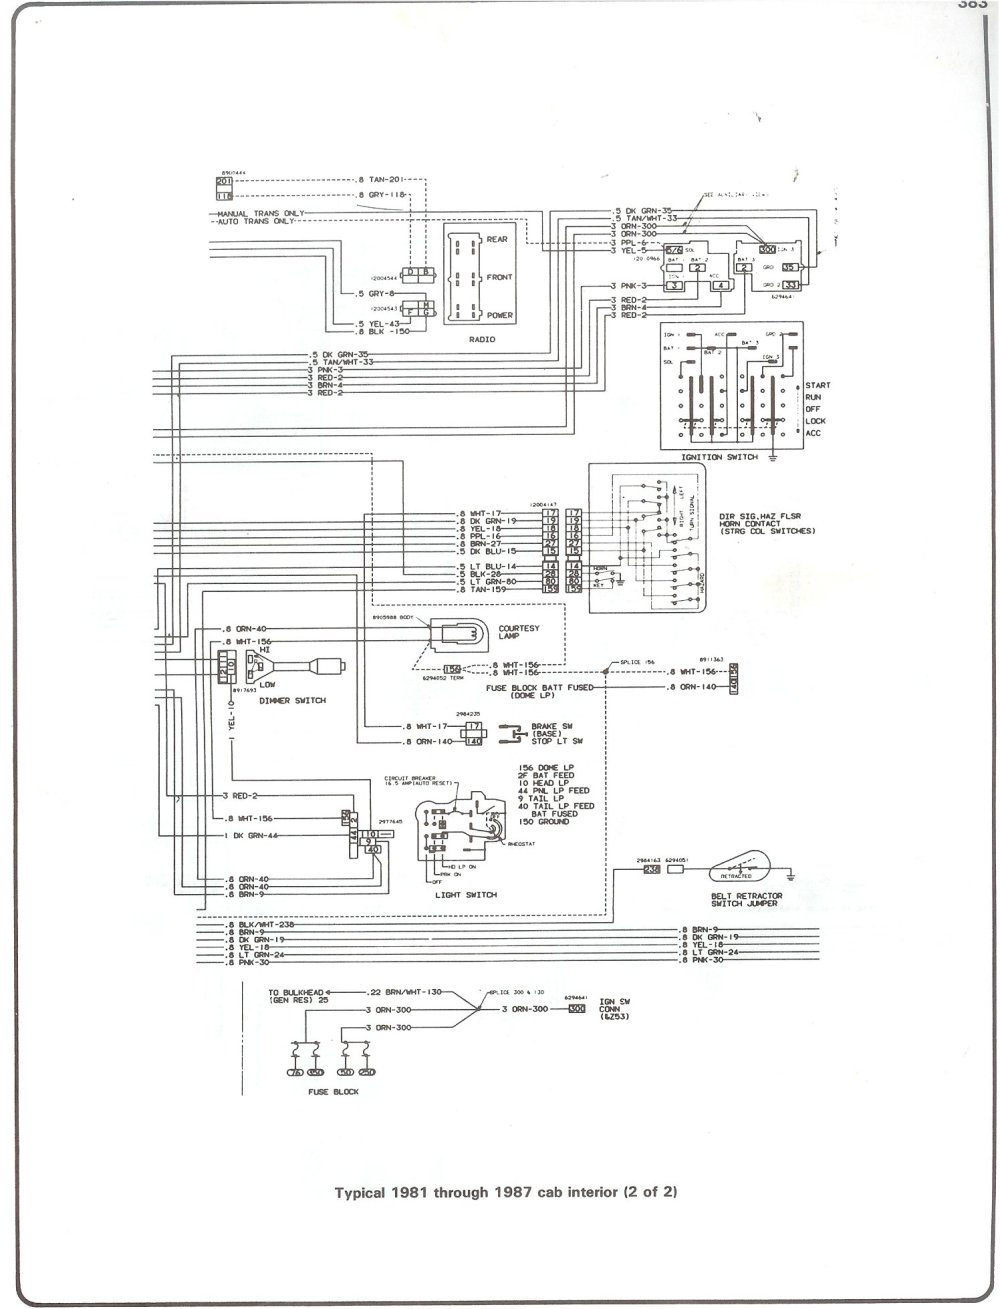 medium resolution of complete 73 87 wiring diagrams chevy wiring diagrams color 81 87 cab interior page 2